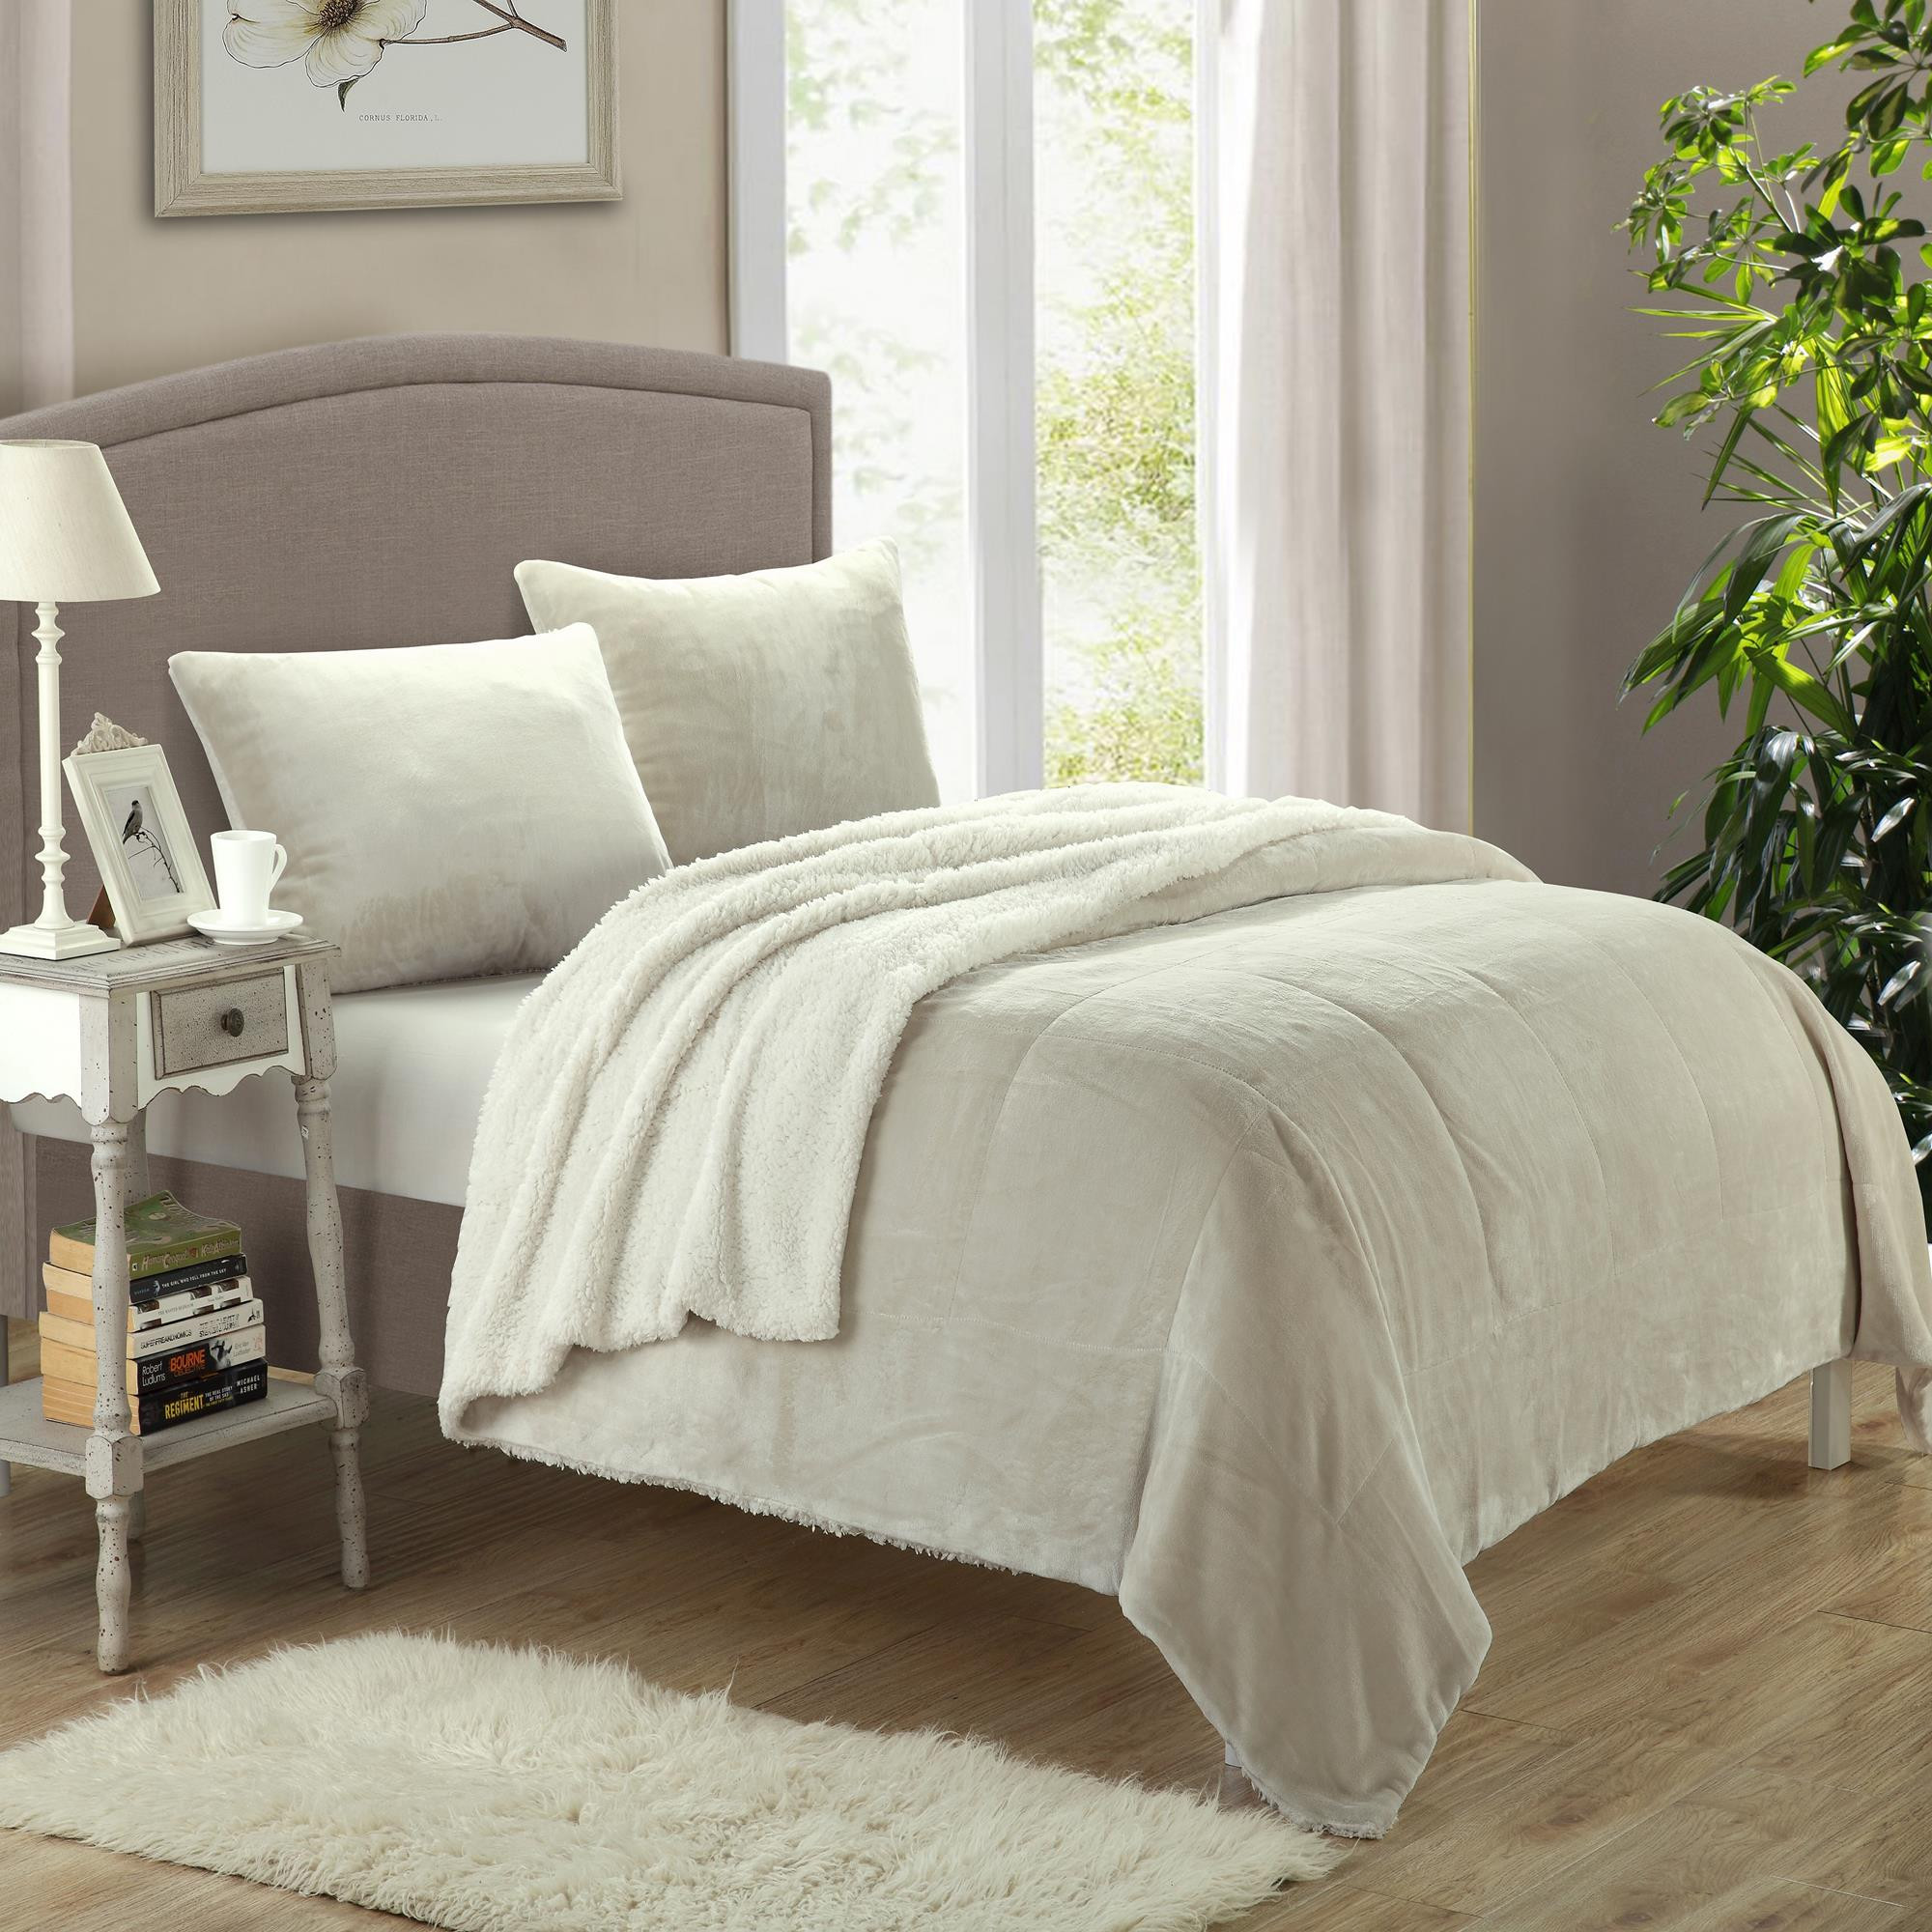 Evie Plush Microsuede Sherpa Lined Beige 7 Piece Blanket In A Bag Set